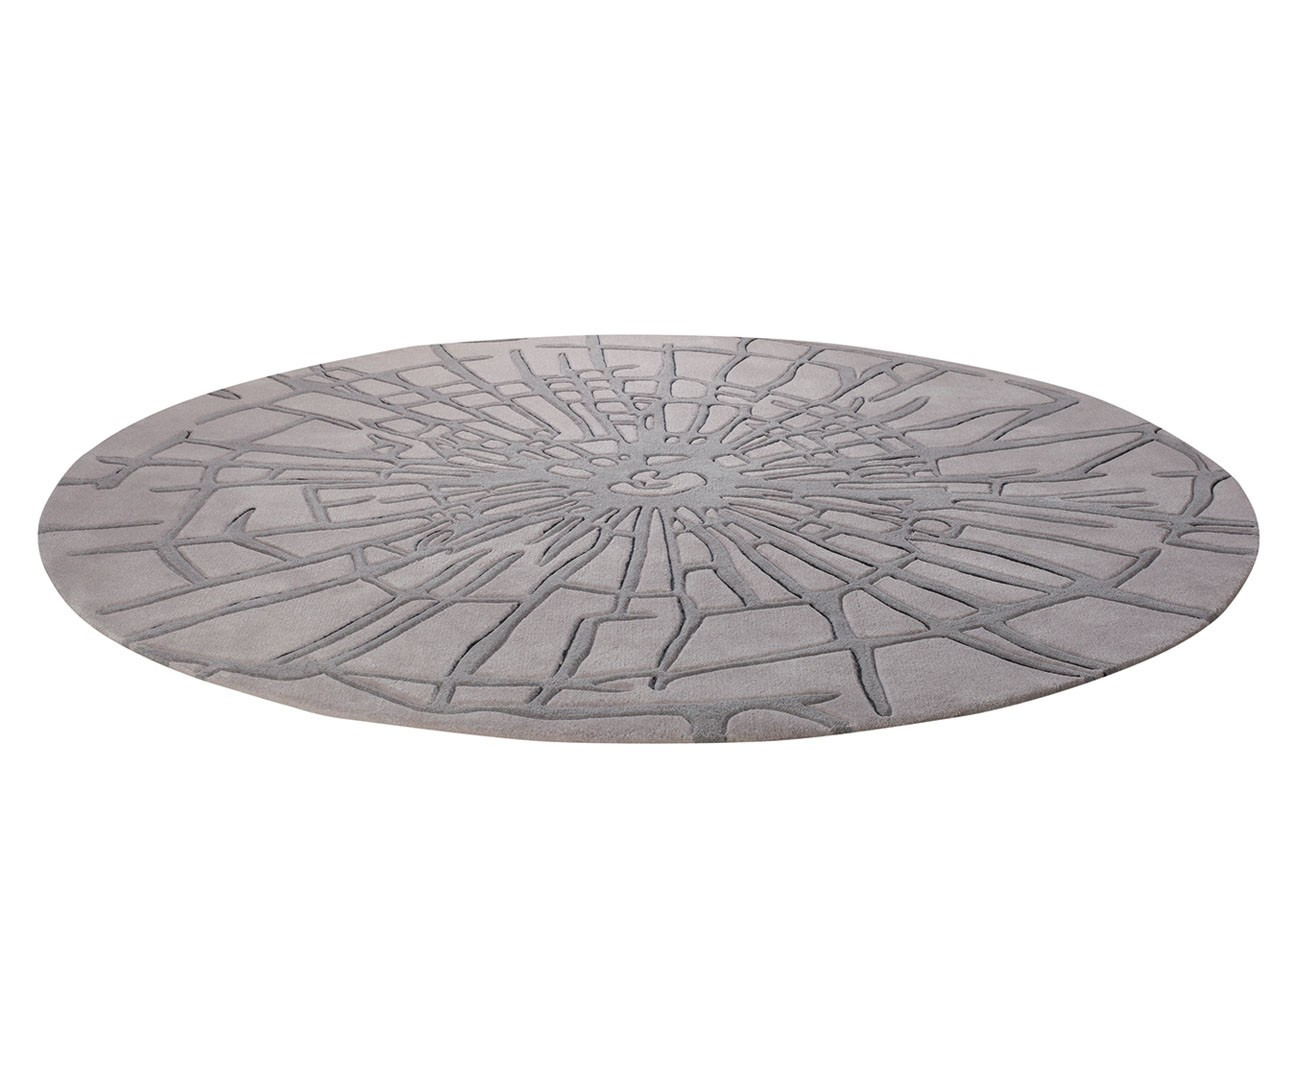 Tapis rond gris wood par esprit home - Coupon reduction maison du monde ...